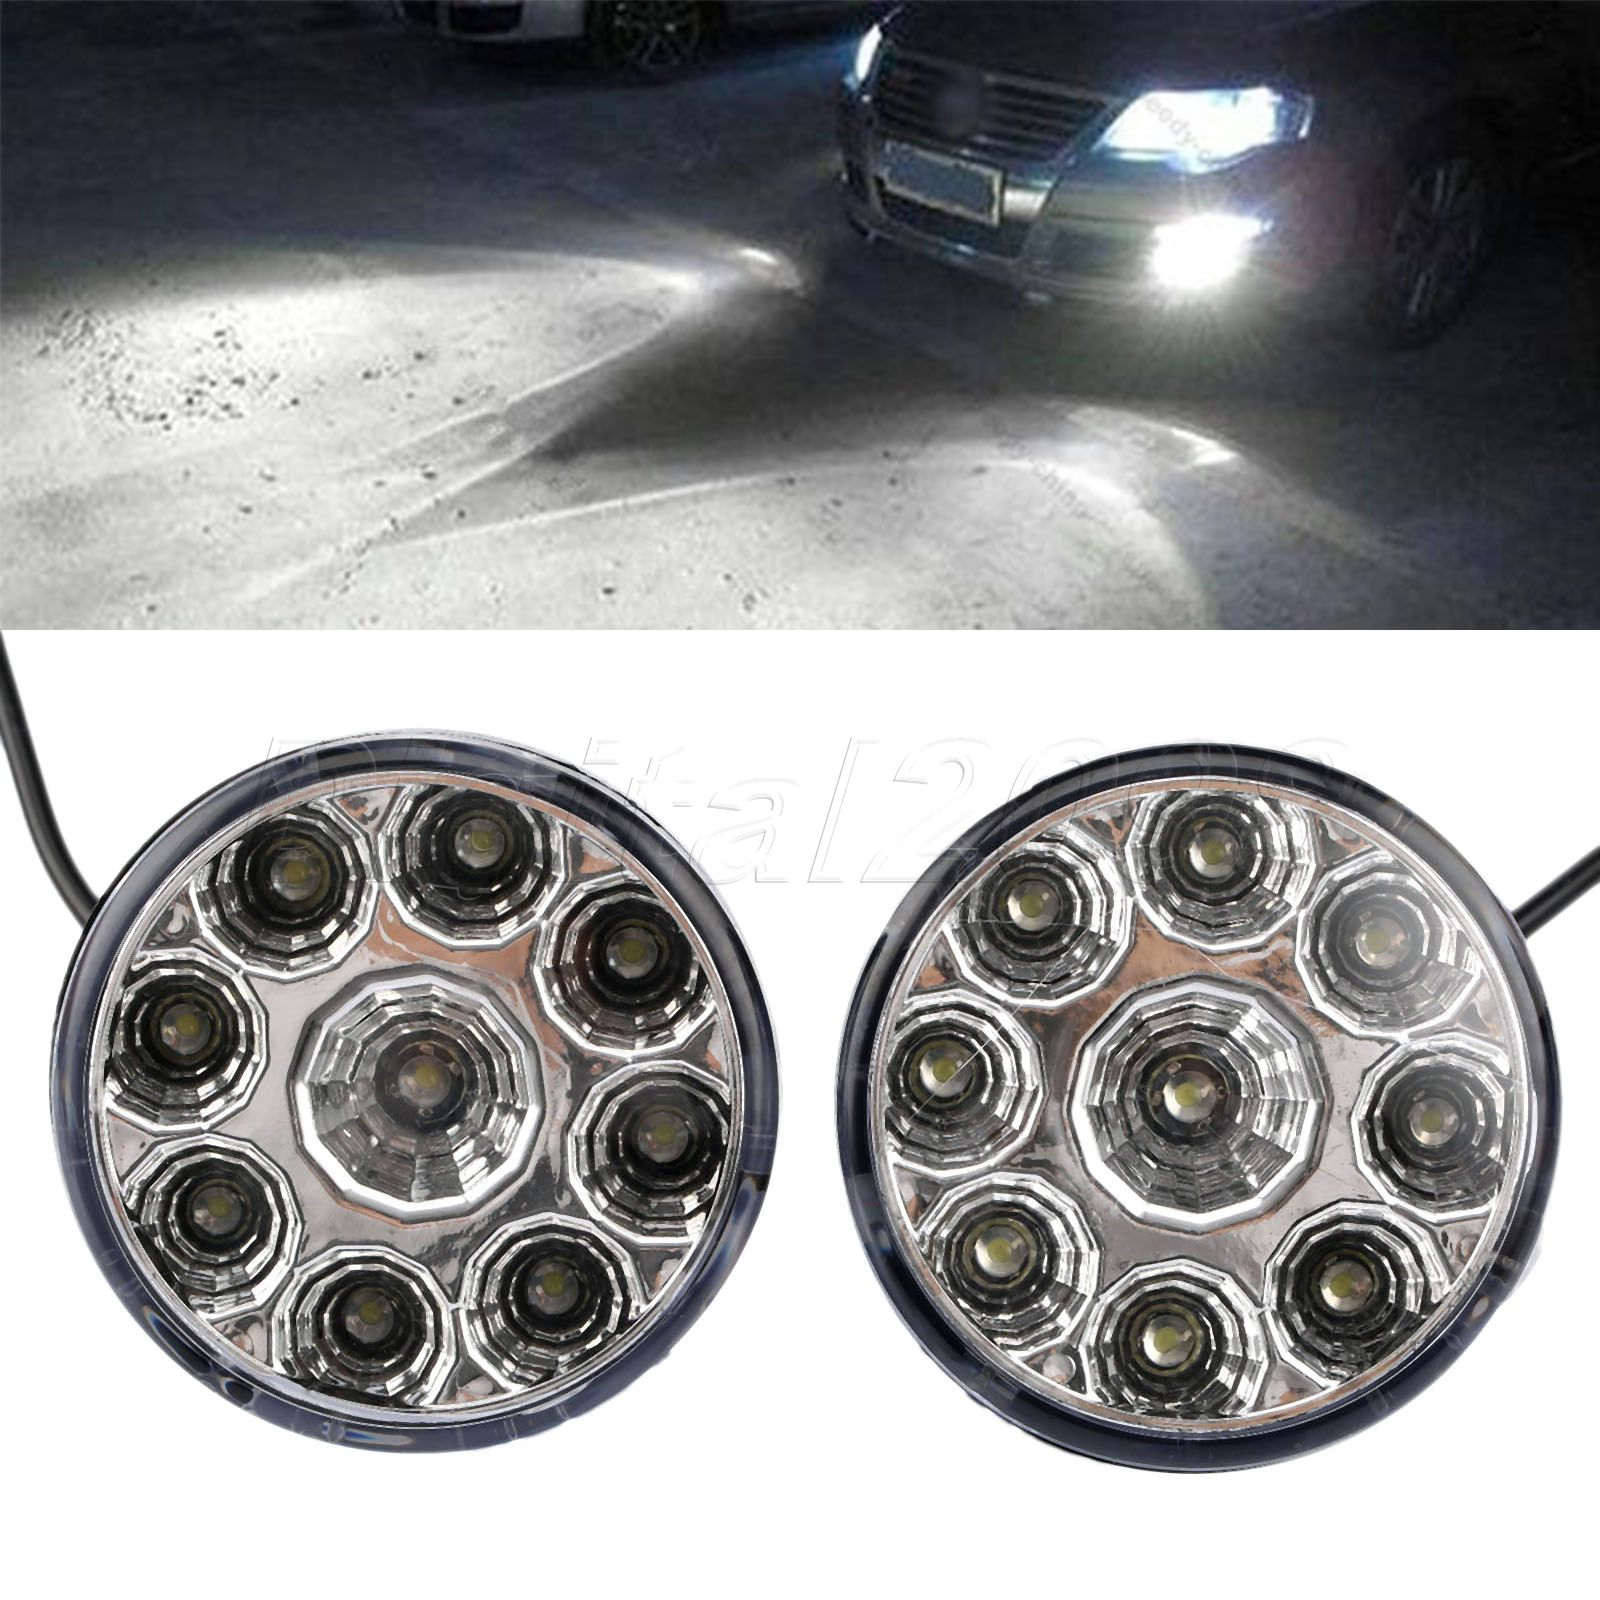 Yetaha 2pcs DRL Round Daytime Running Light Car Fog Lamp Day Driving Lamp 12v 9 LED Auto Headlight White Fog Light High Quality high quality led round daytime driving running light drl for toyota sienna 2011 car fog lamp headlight super white